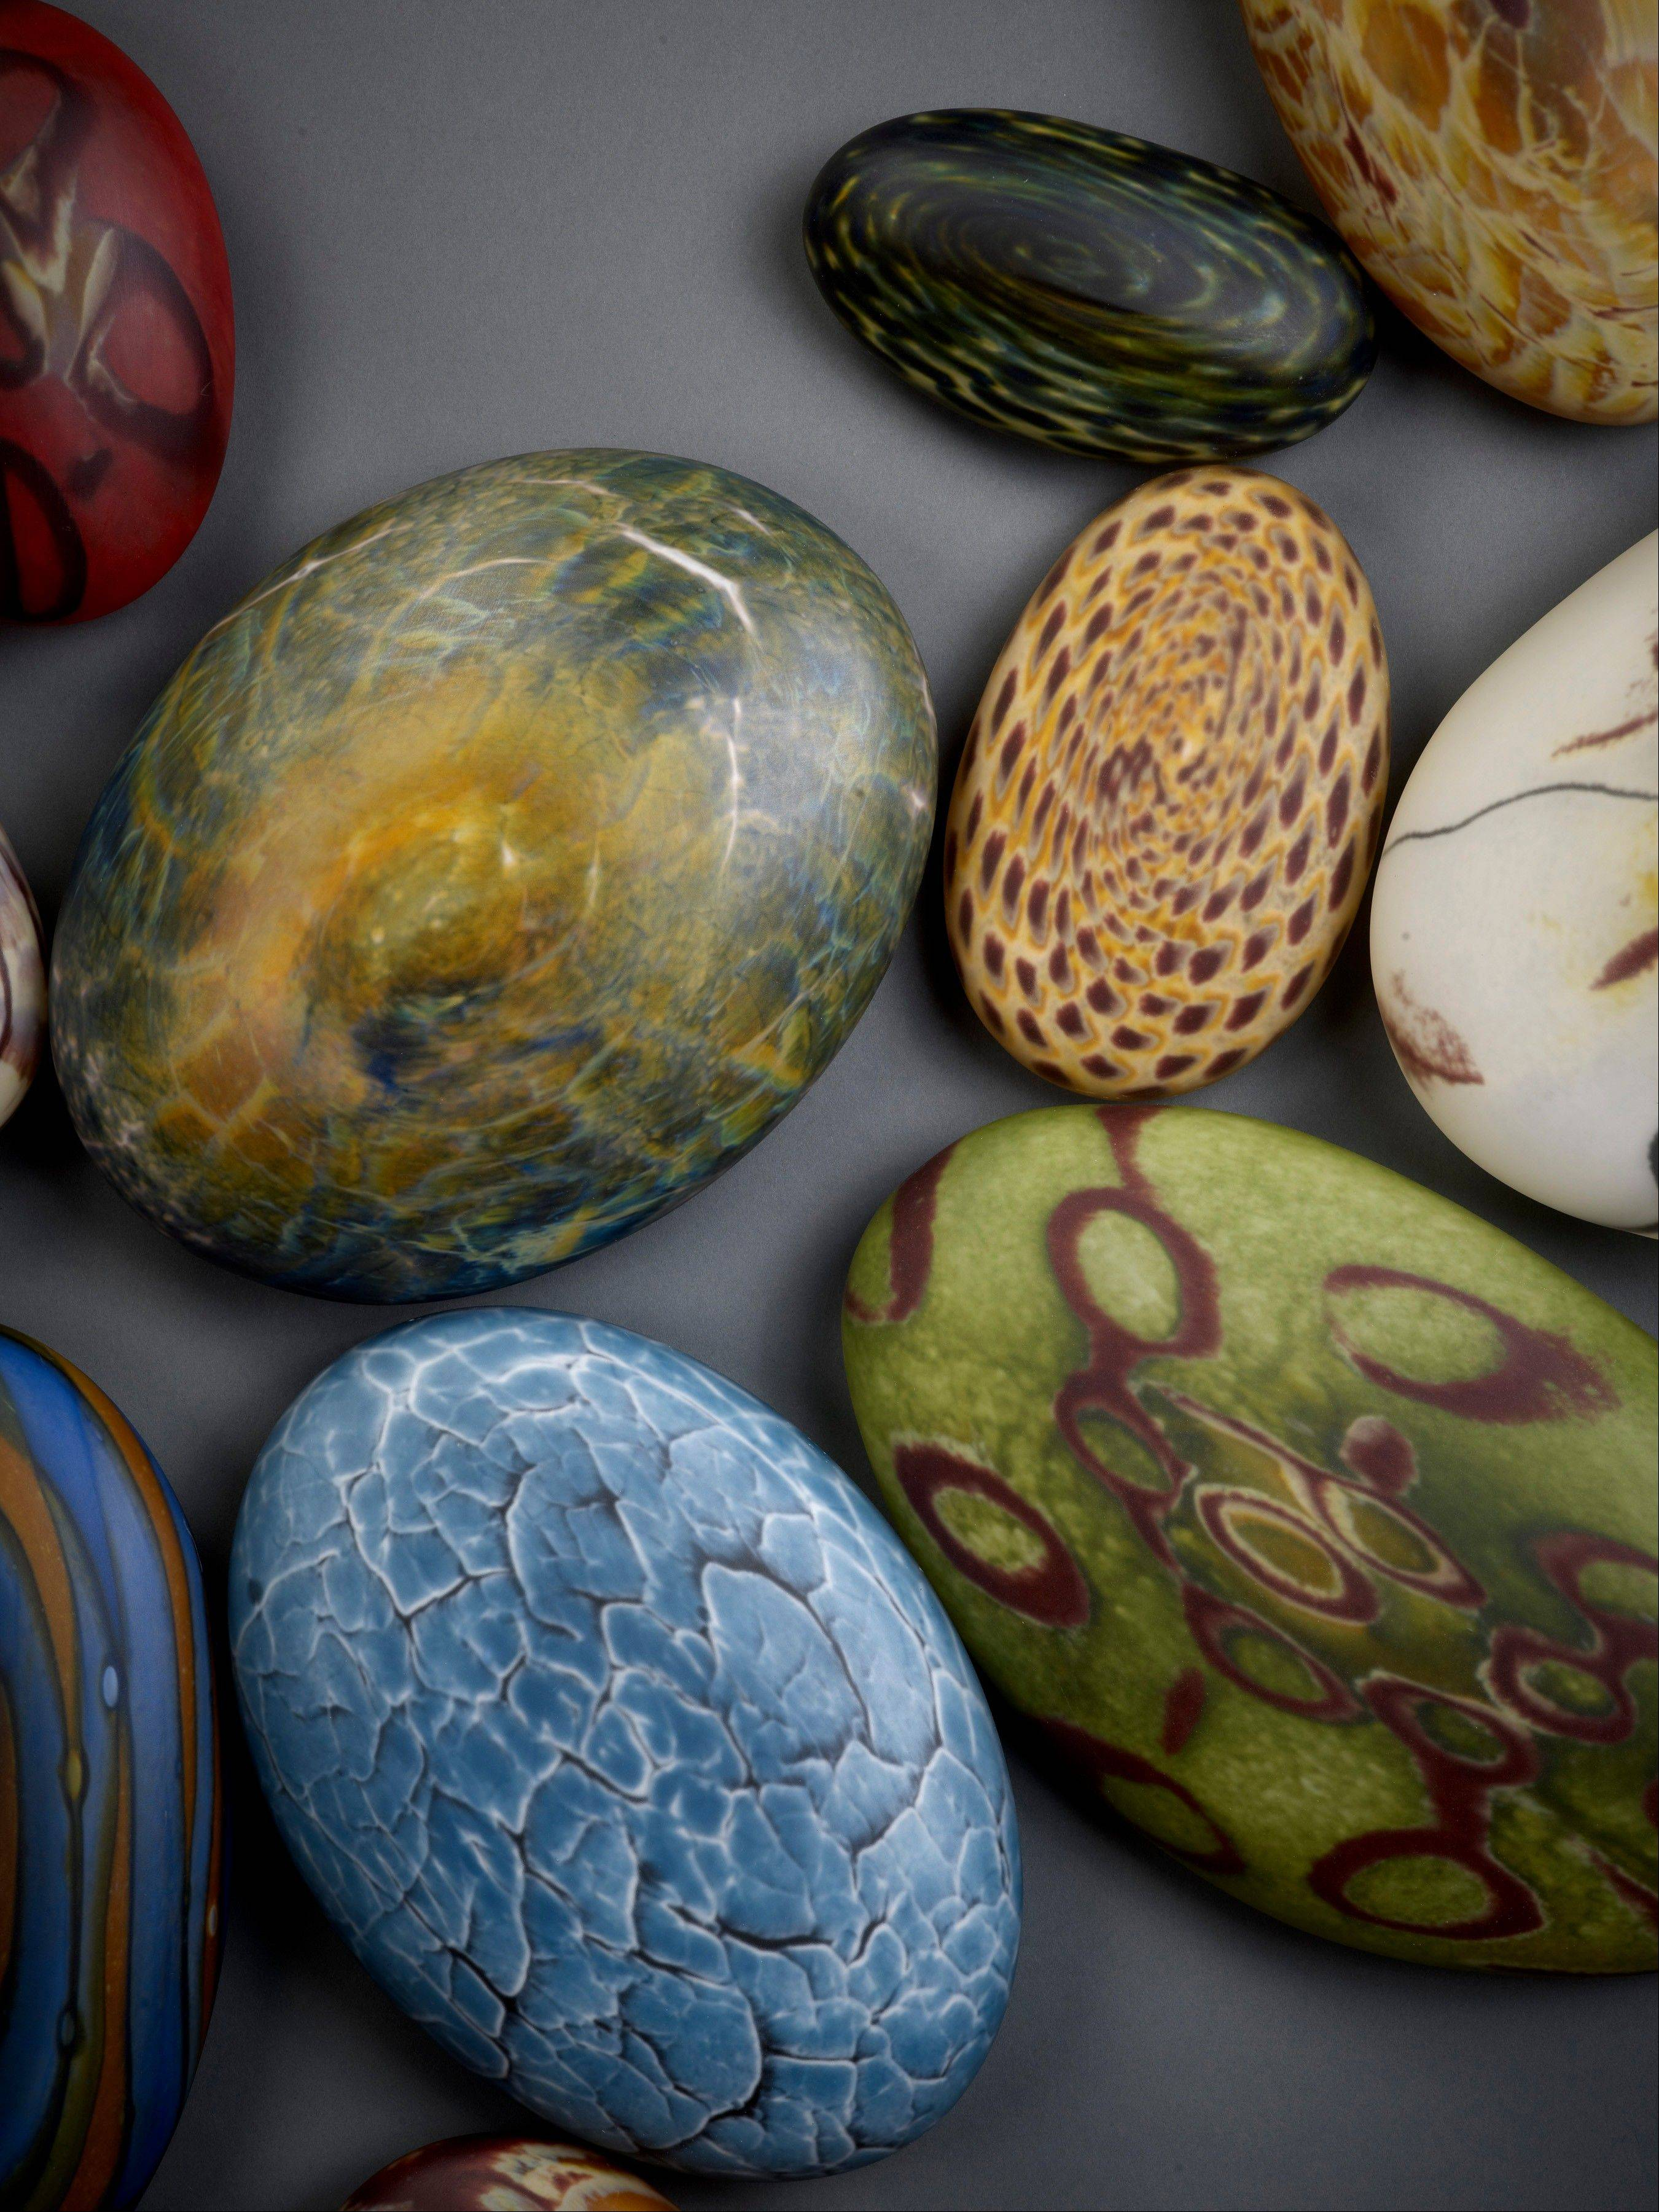 Wet rocks created by Thor and Jennifer Bueno, who form hot glass into shapes evoking water-washed rocks or molecular structures in their studio in Spruce Pine, N.C.